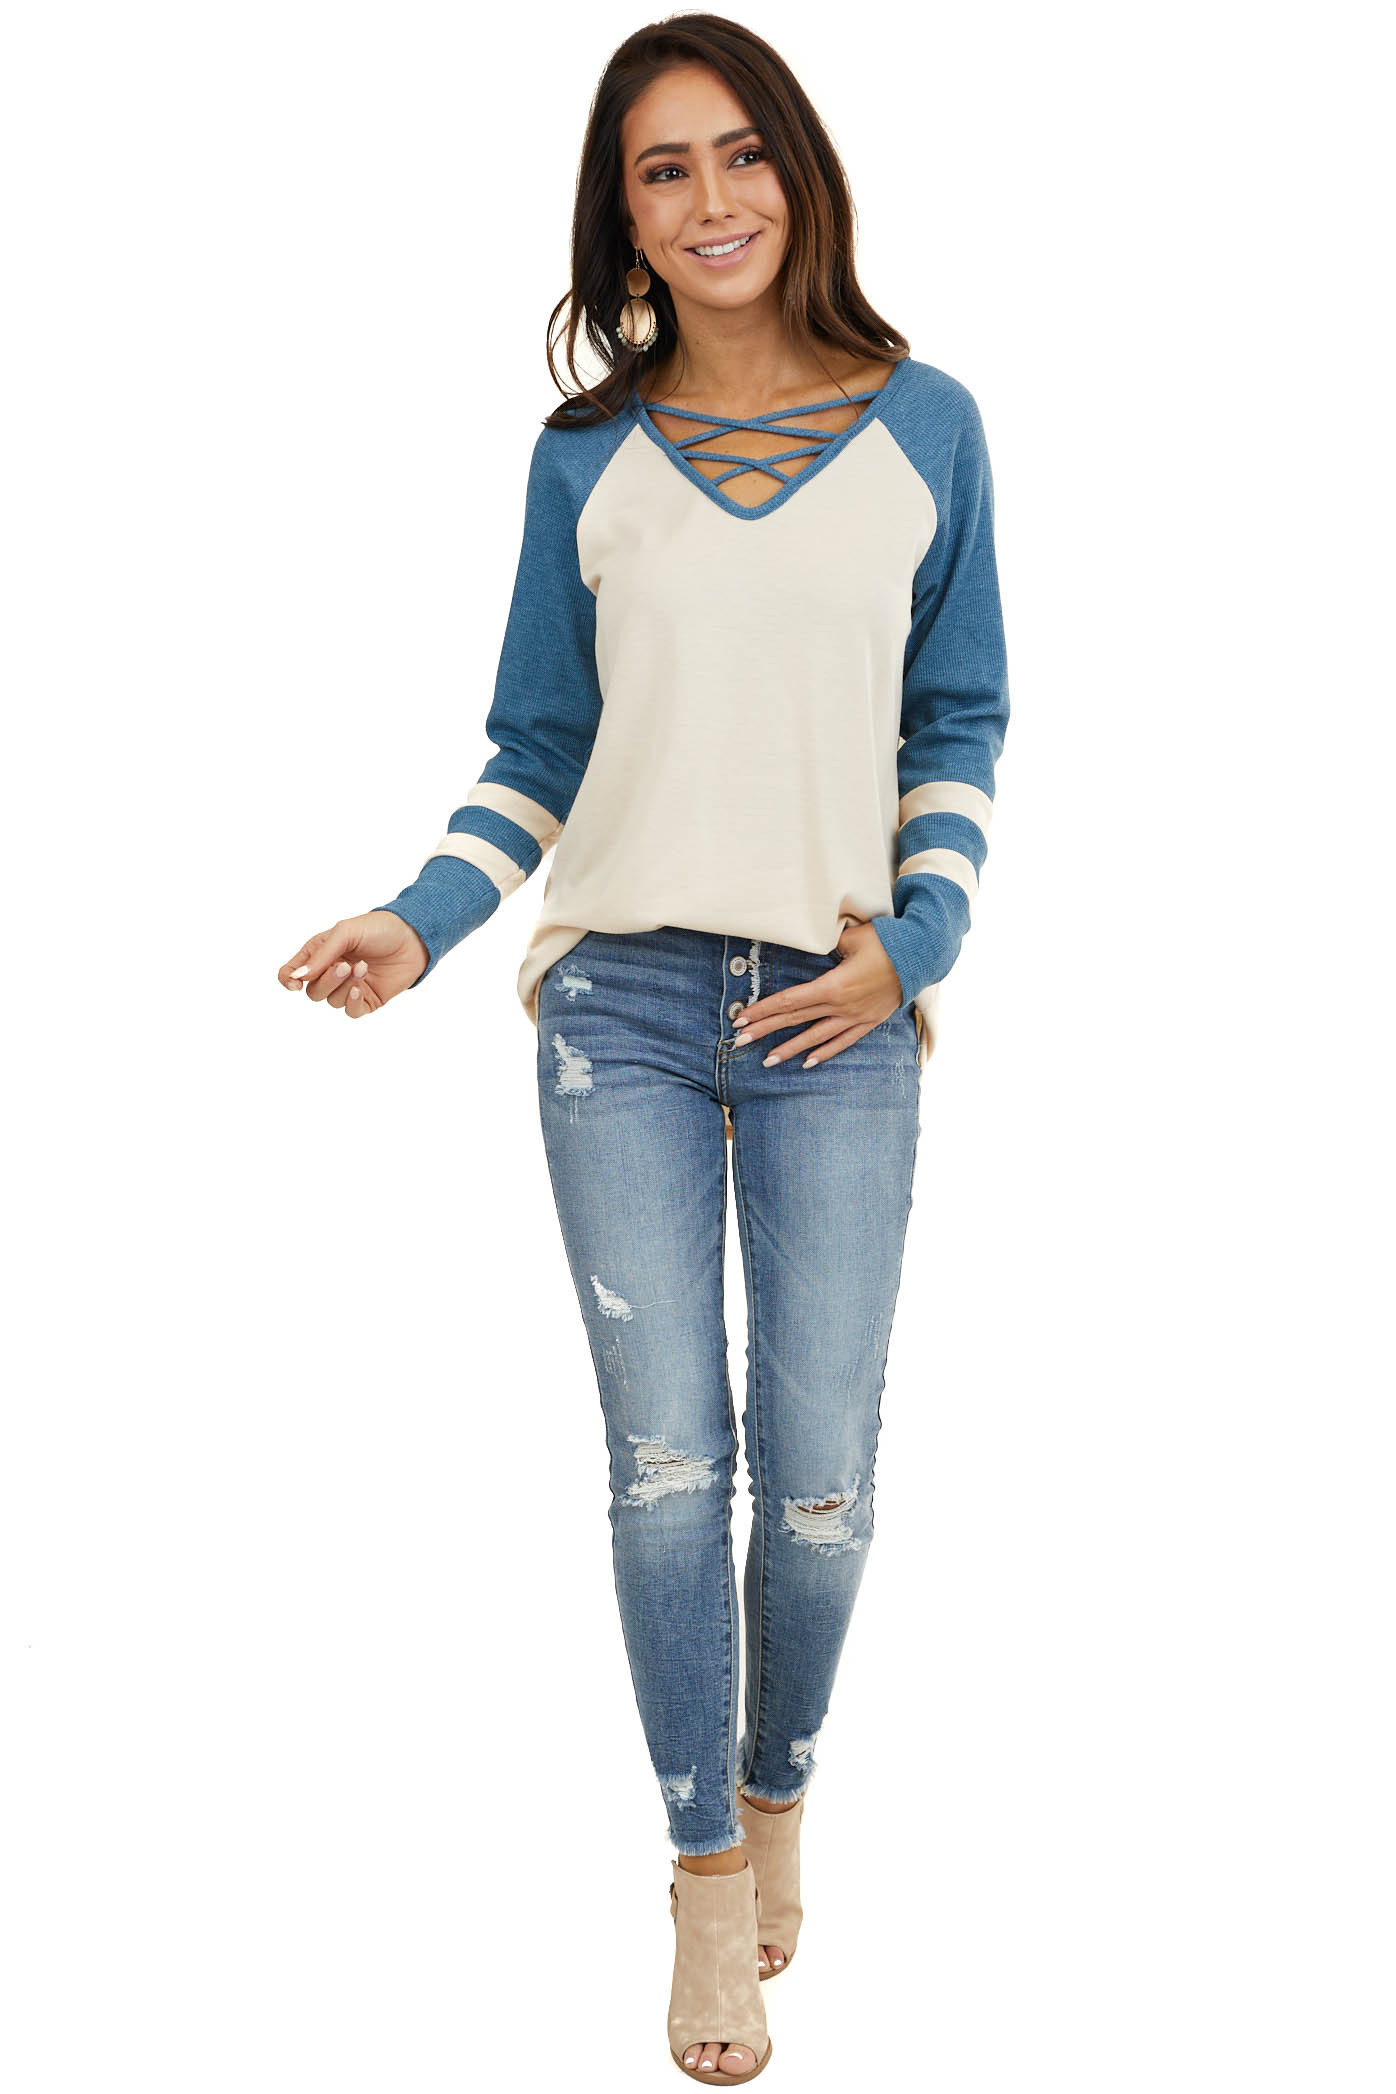 Cream Top with Ocean Waffle Knit Contrast Sleeves